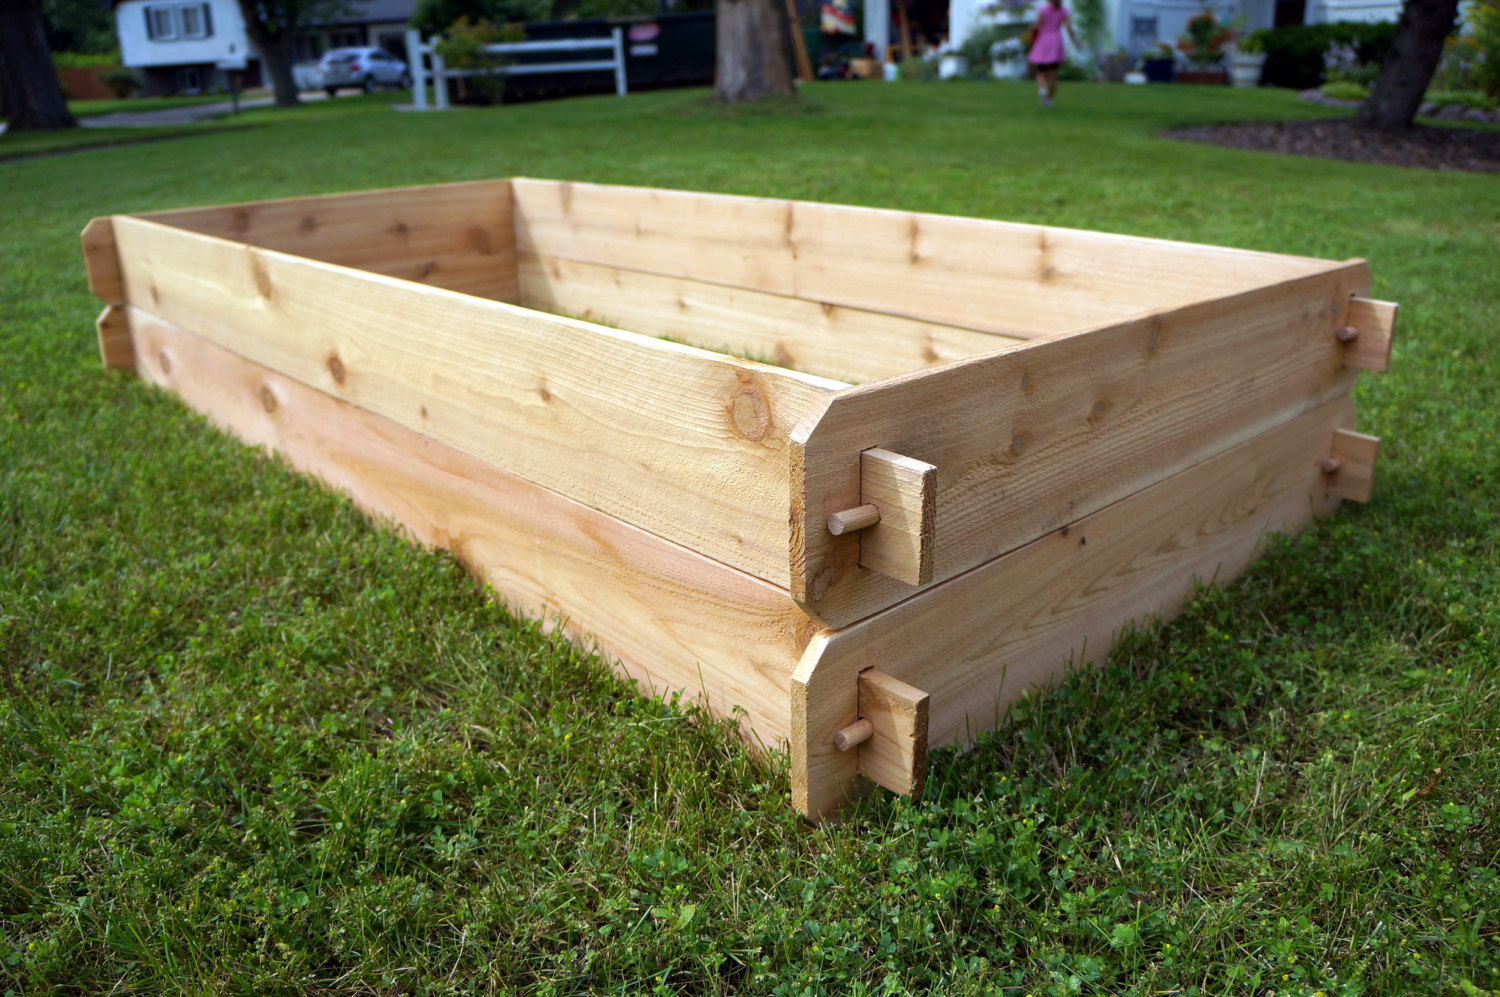 TWO 3x6 Cedar Raised Garden Bed Kits Raised Planter Outdoor Large Herb Plant Pot